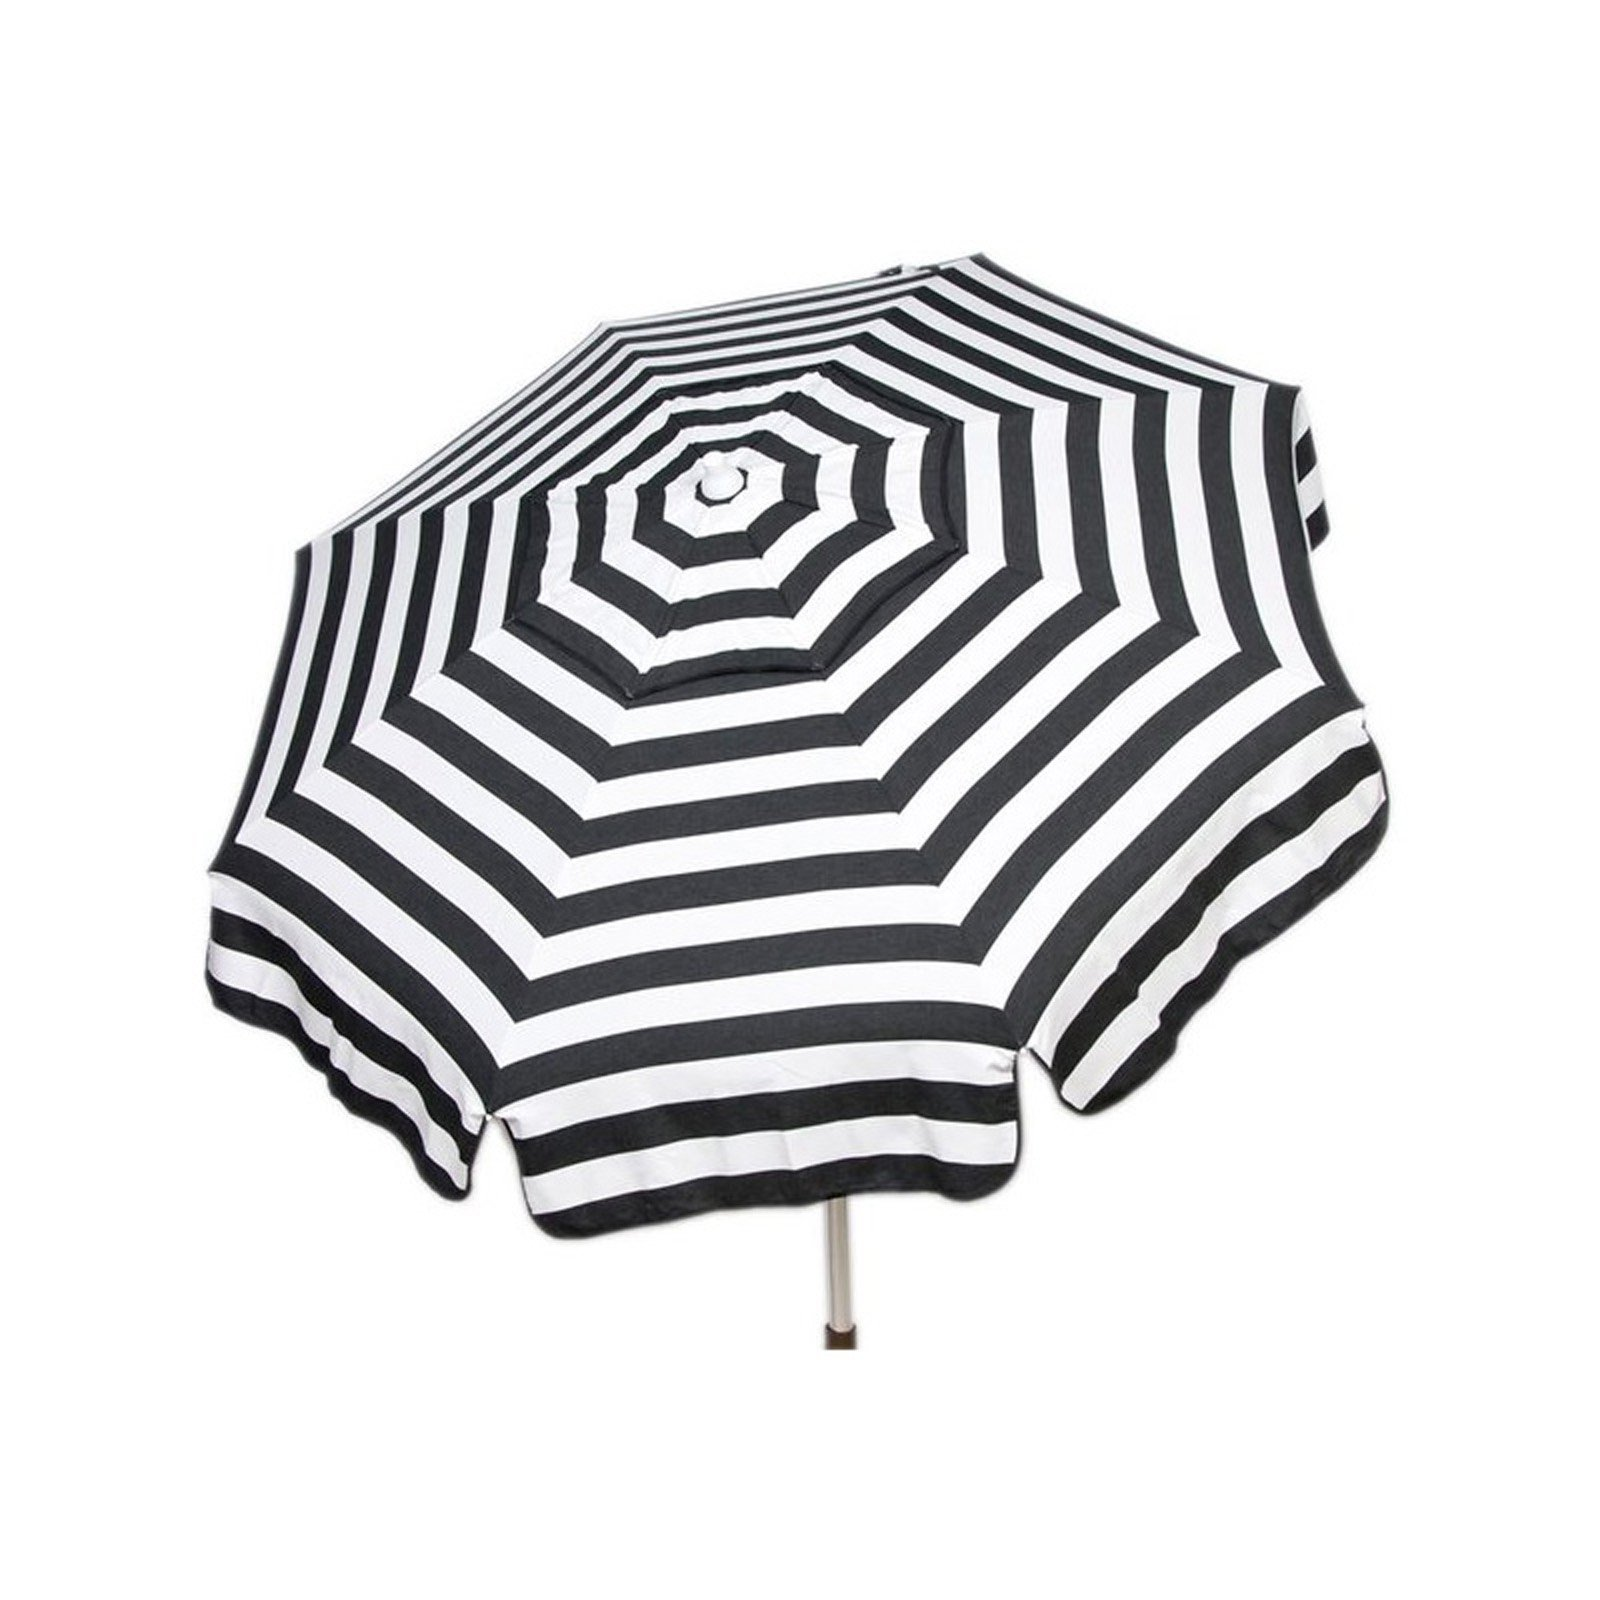 6ft Italian Market Tilt Umbrella Home Sun Patio Black Stripe - Beach Pole